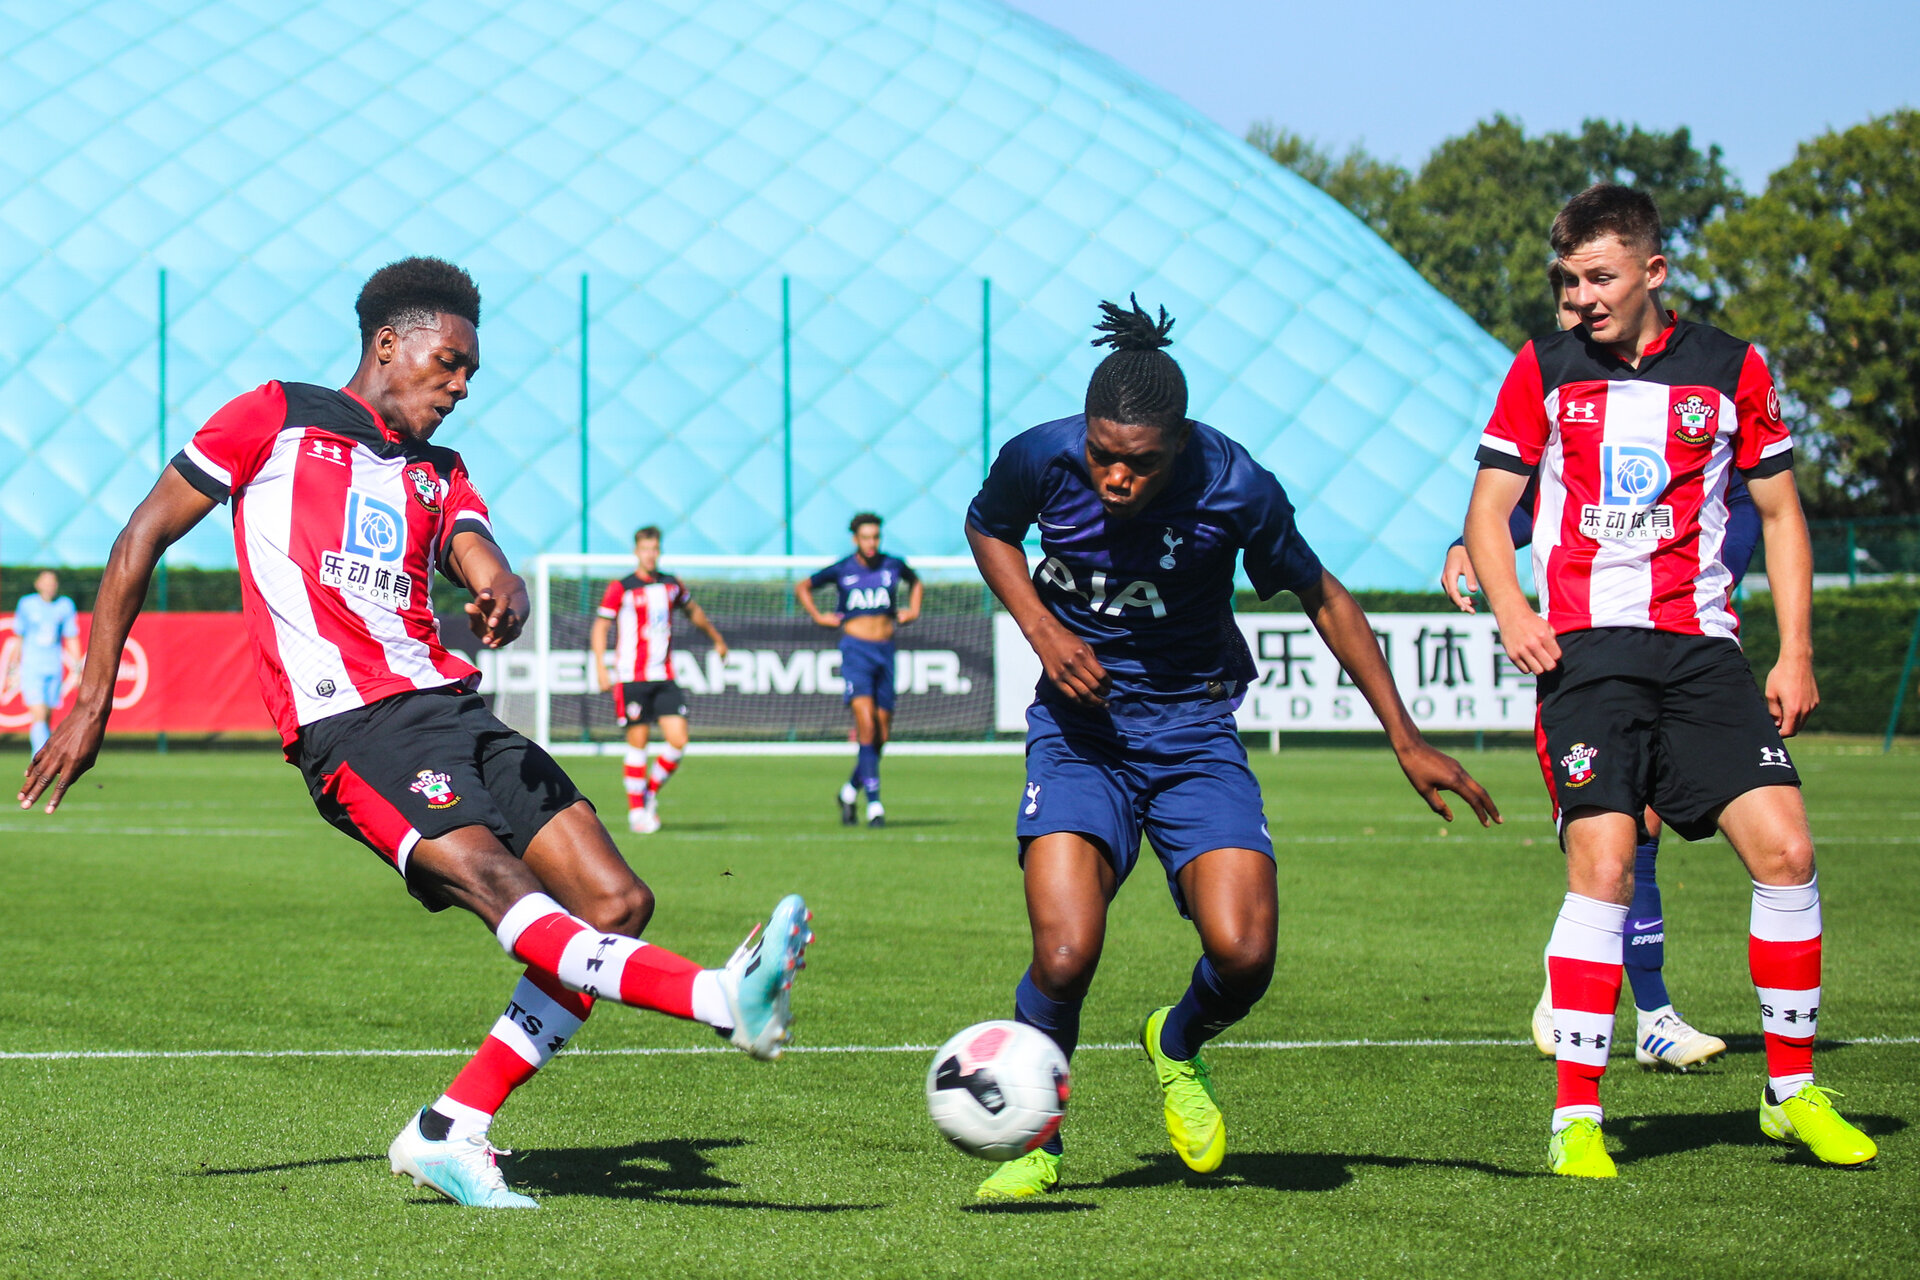 SOUTHAMPTON, ENGLAND - SEPTEMBER 21: Southampton FC number 11 has a shot during the Under 18s match between Southampton FC and Tottenham Hotspur at the Staplewood Campus on September 21, 2019 in Southampton, England